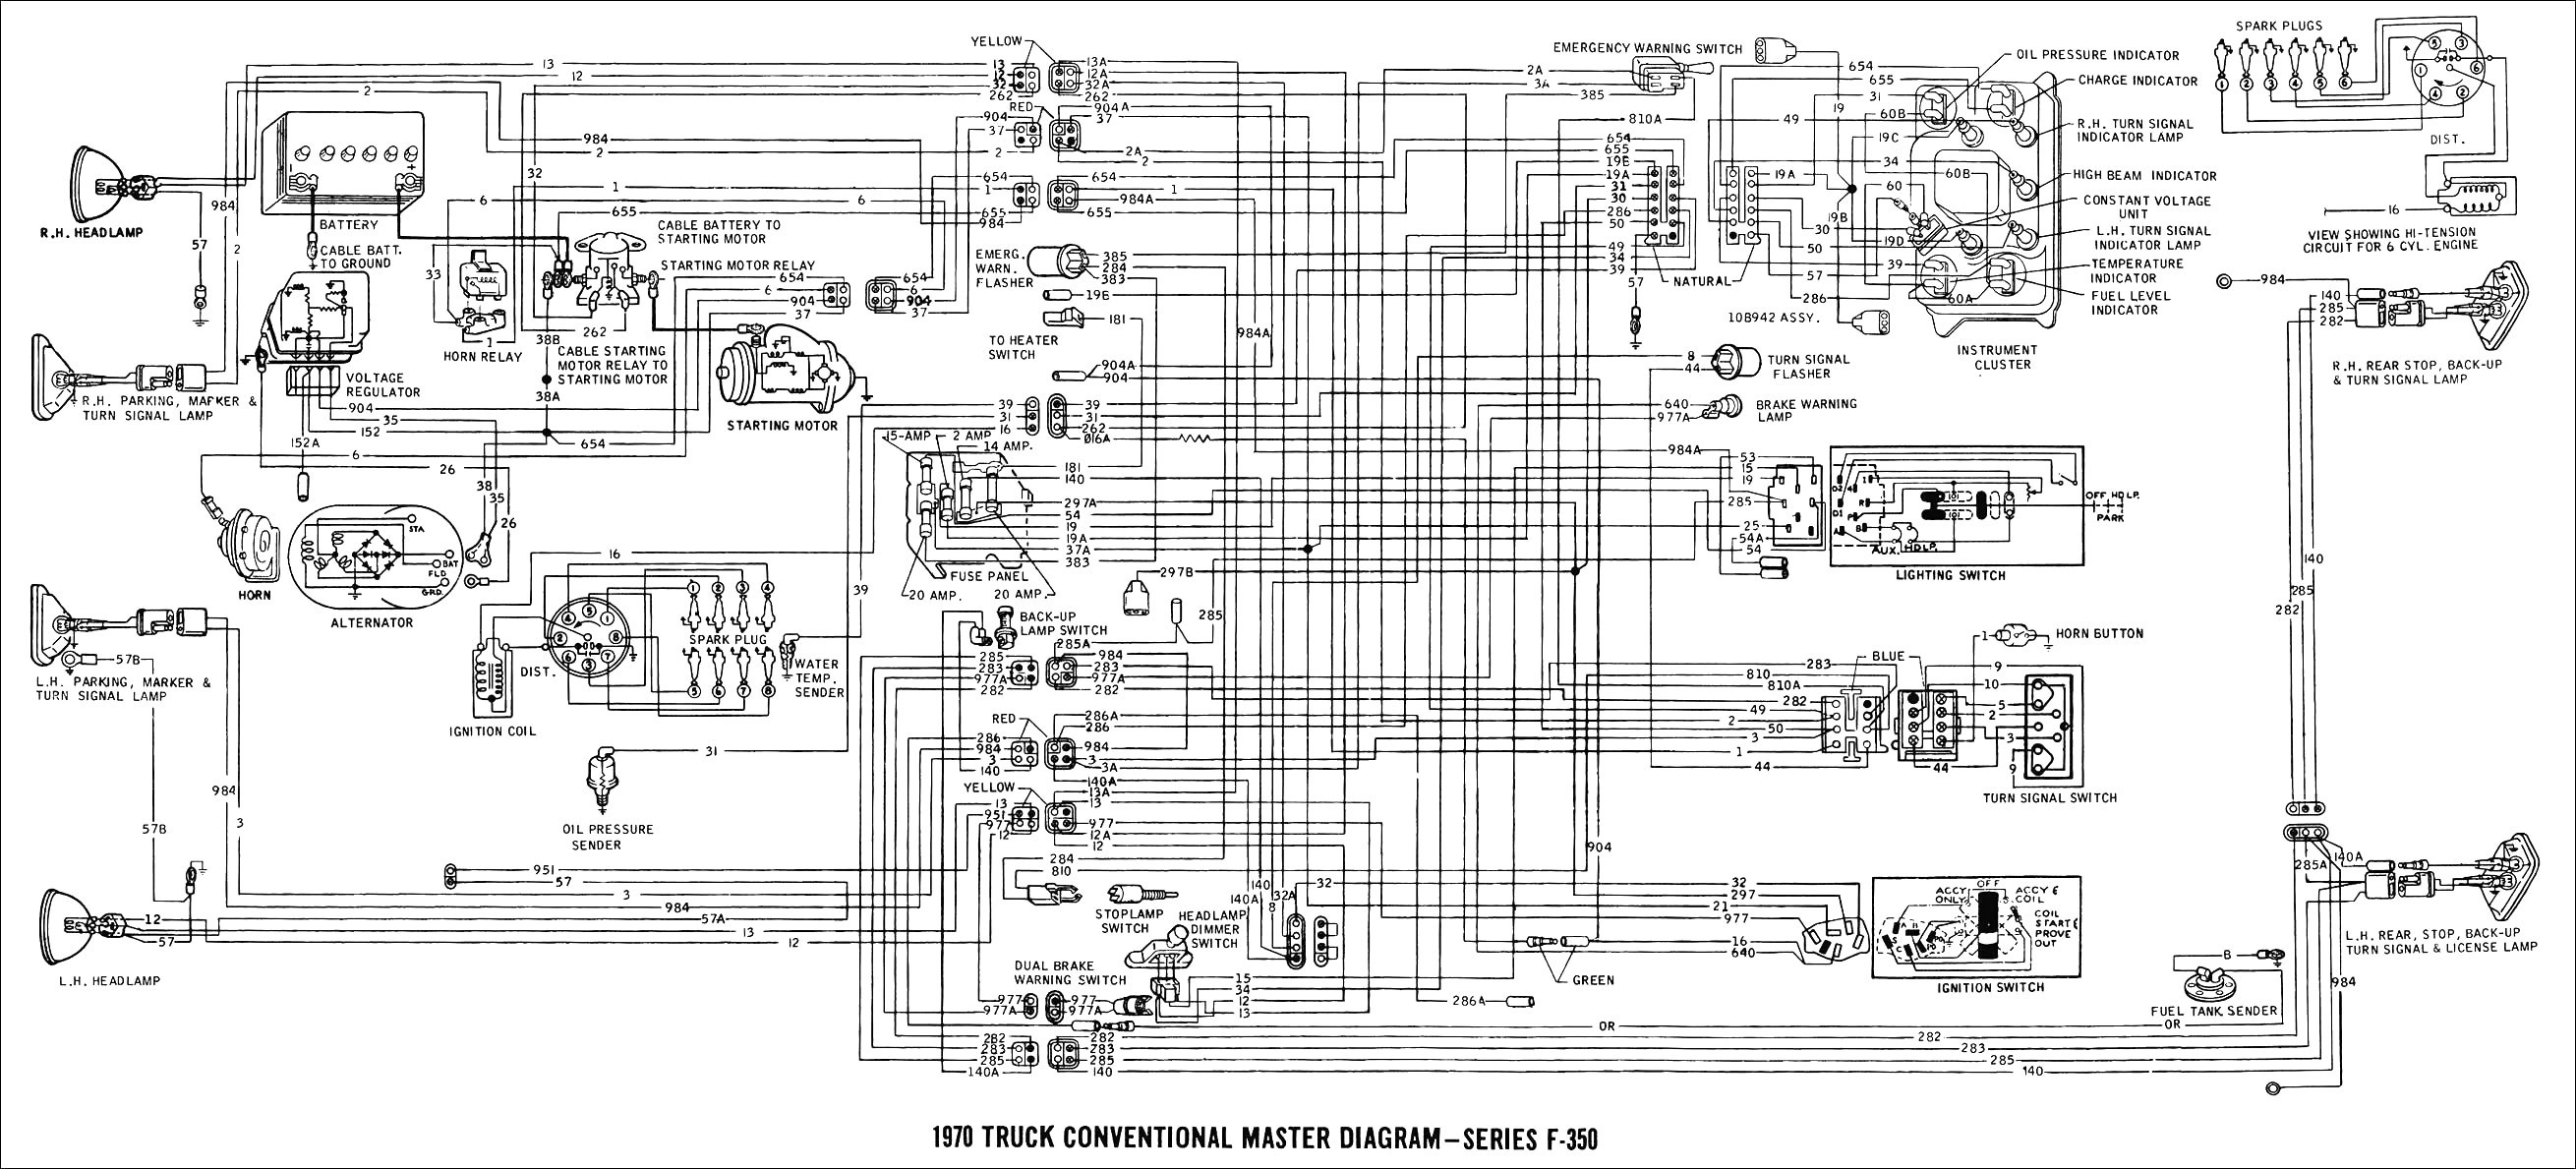 2003 Ford Expedition Engine Diagram 5 4 Triton My Trailer Wiring F250 Wire Center Of